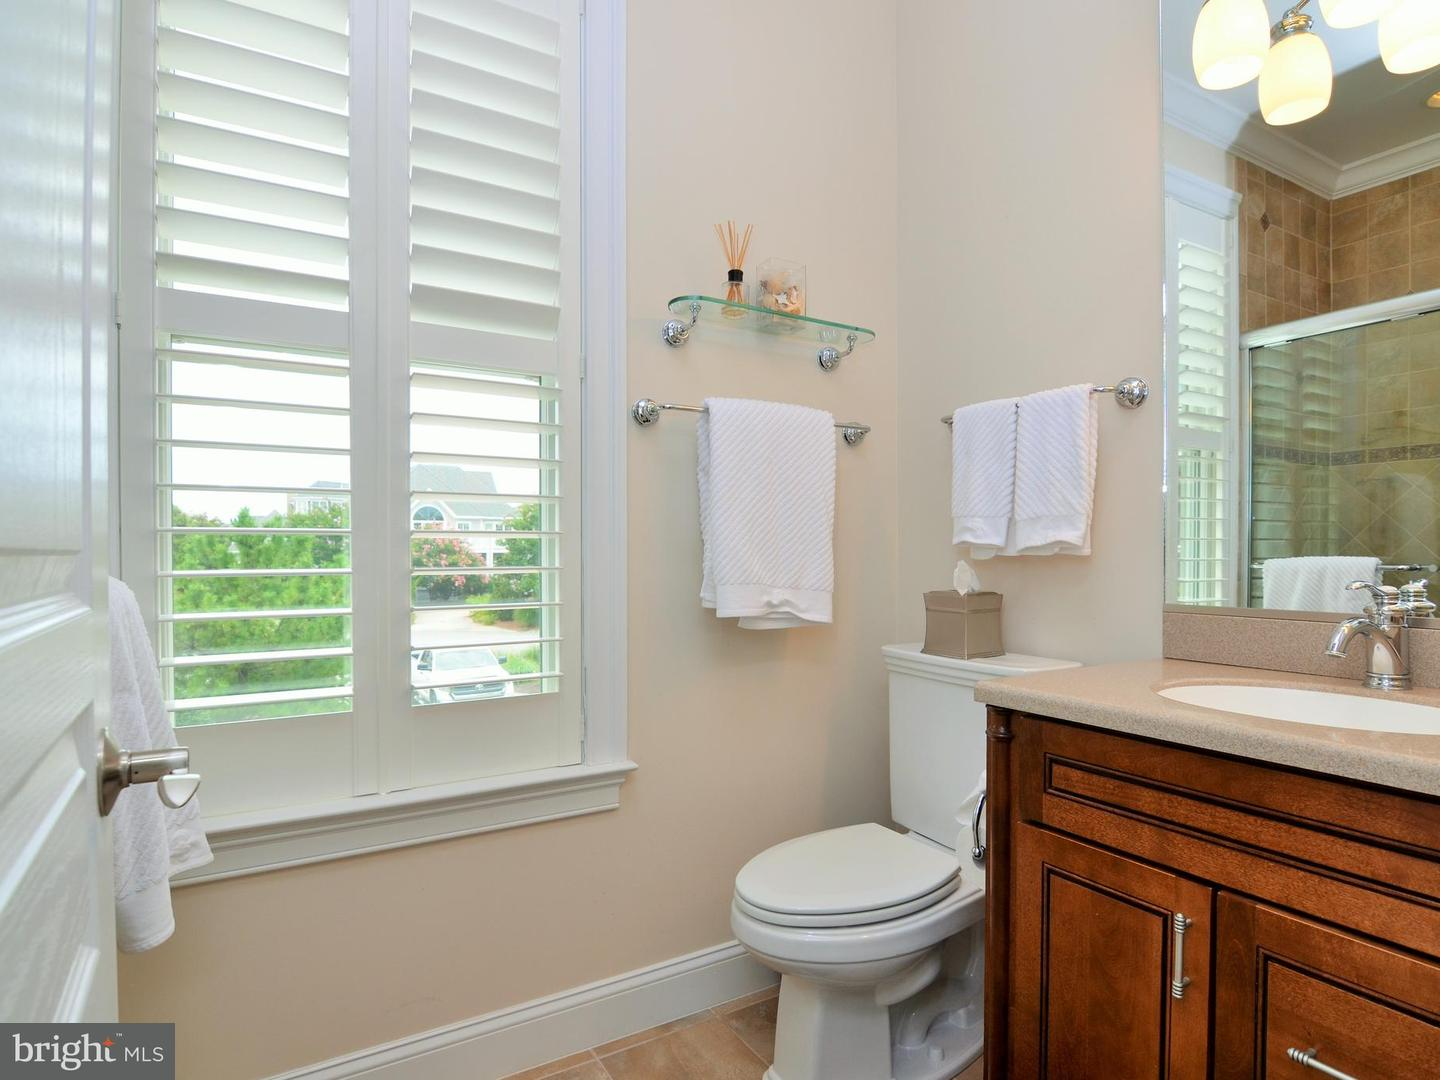 1002293530-300500807427-2018-09-25-15-08-25 31 Hall Ave | Rehoboth Beach, DE Real Estate For Sale | MLS# 1002293530  - 1st Choice Properties